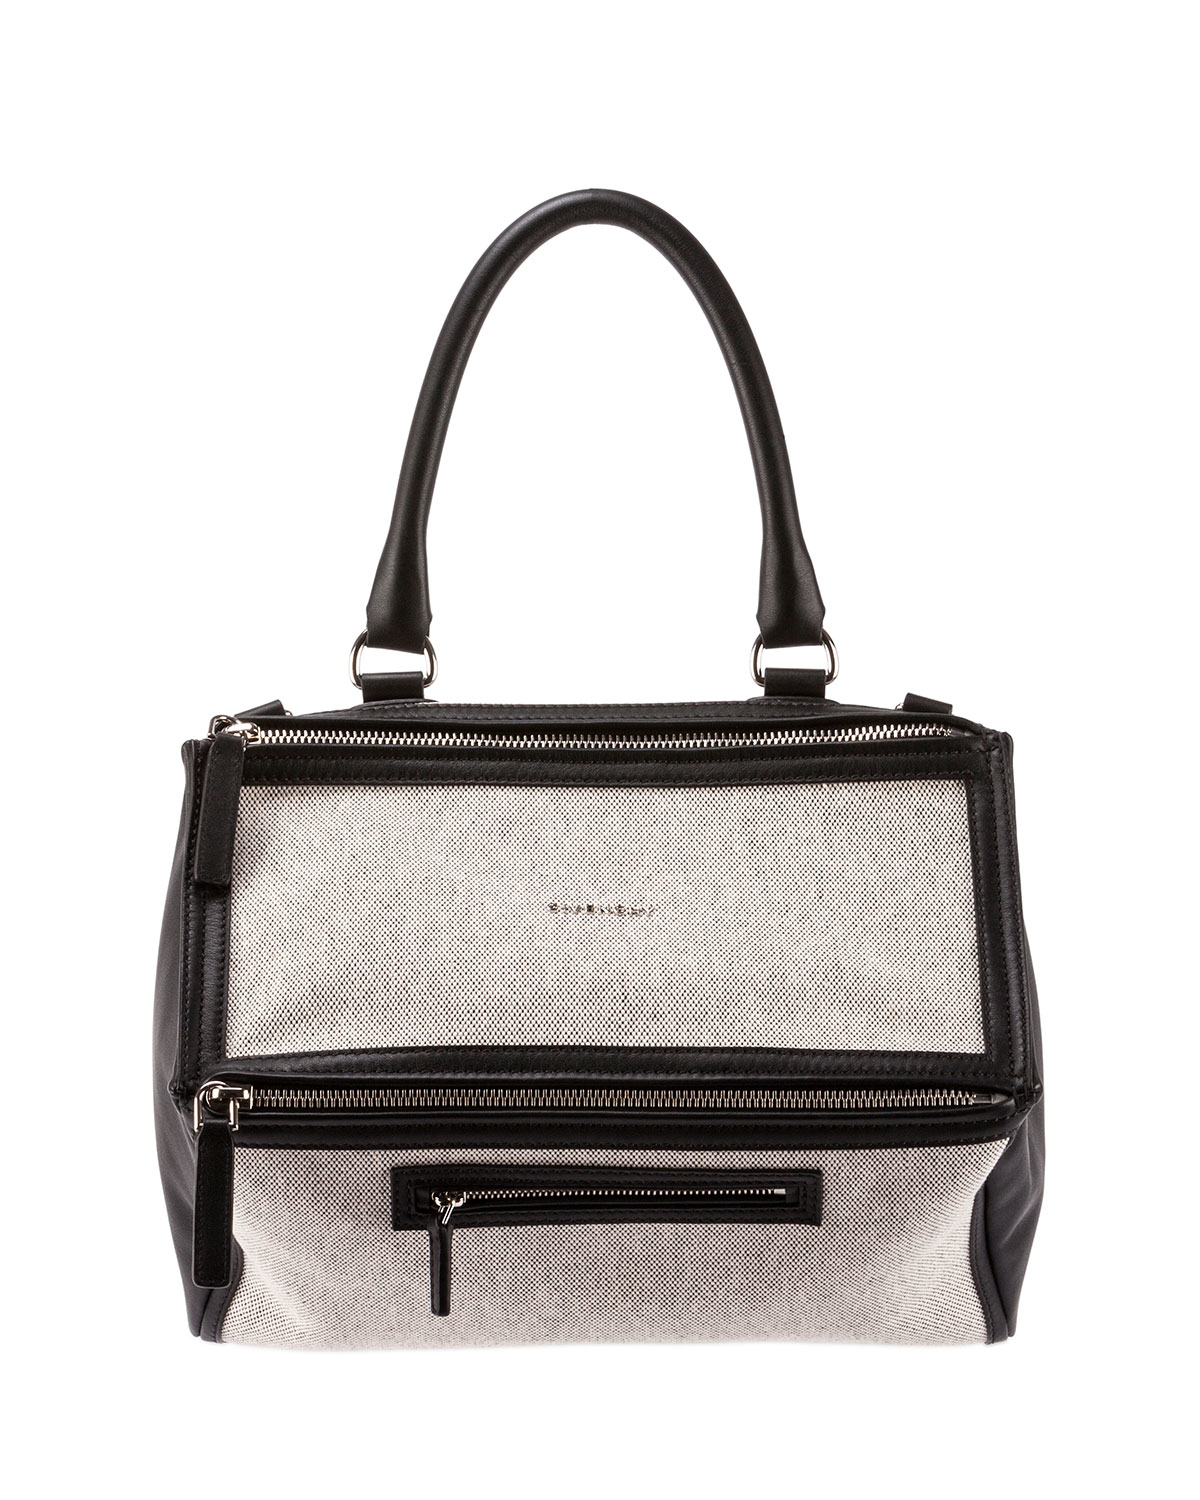 ee8d973f48 Givenchy Pandora Medium Canvas   Leather Bag in Black - Lyst